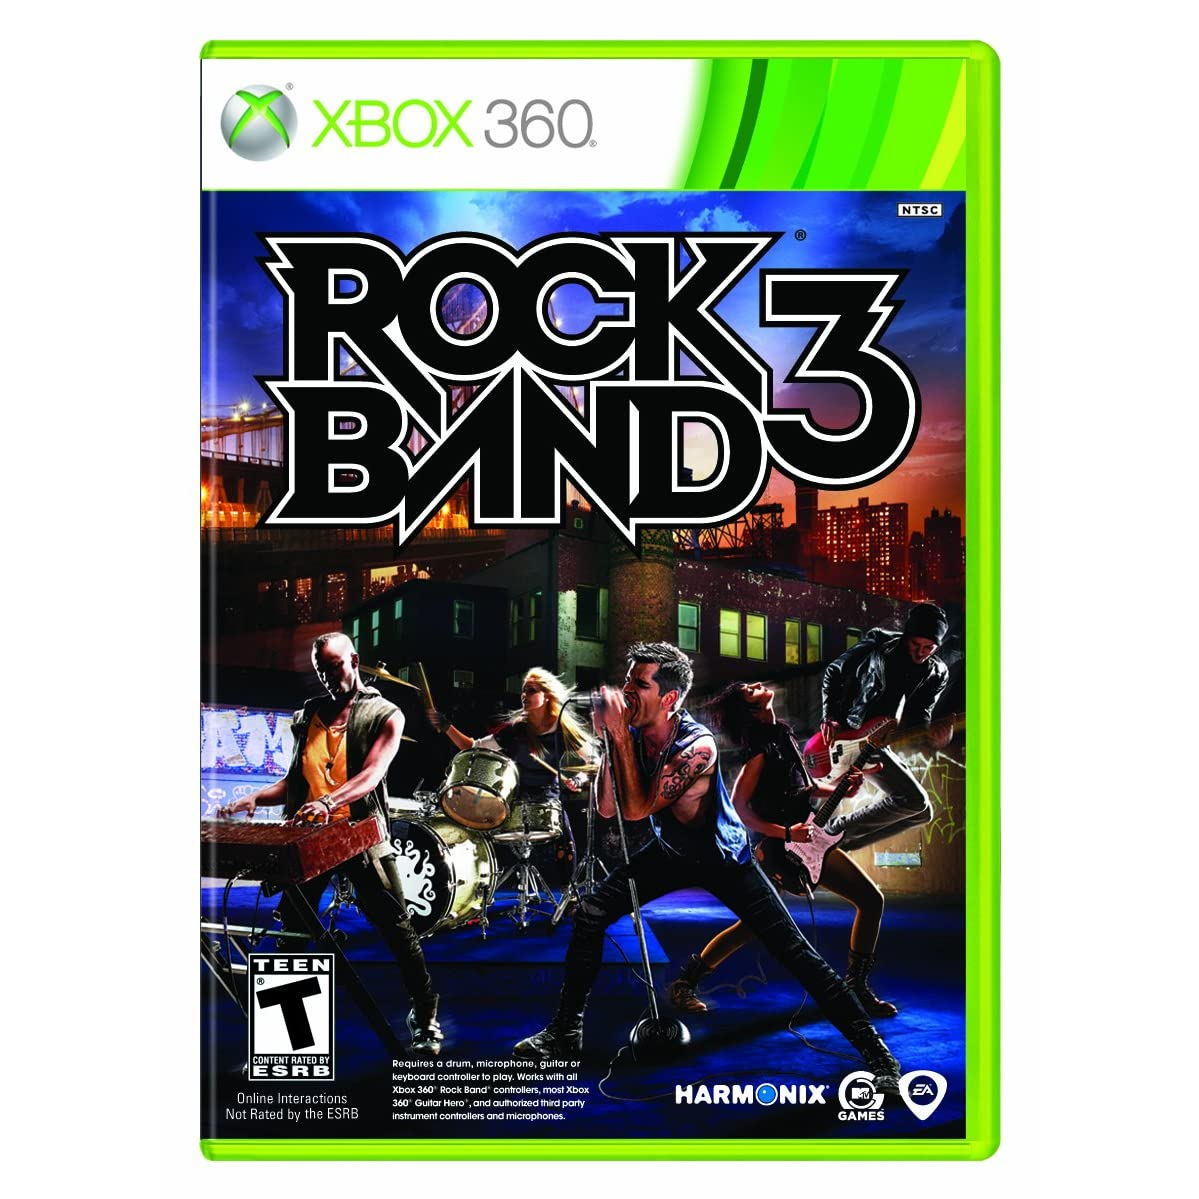 Rockband3